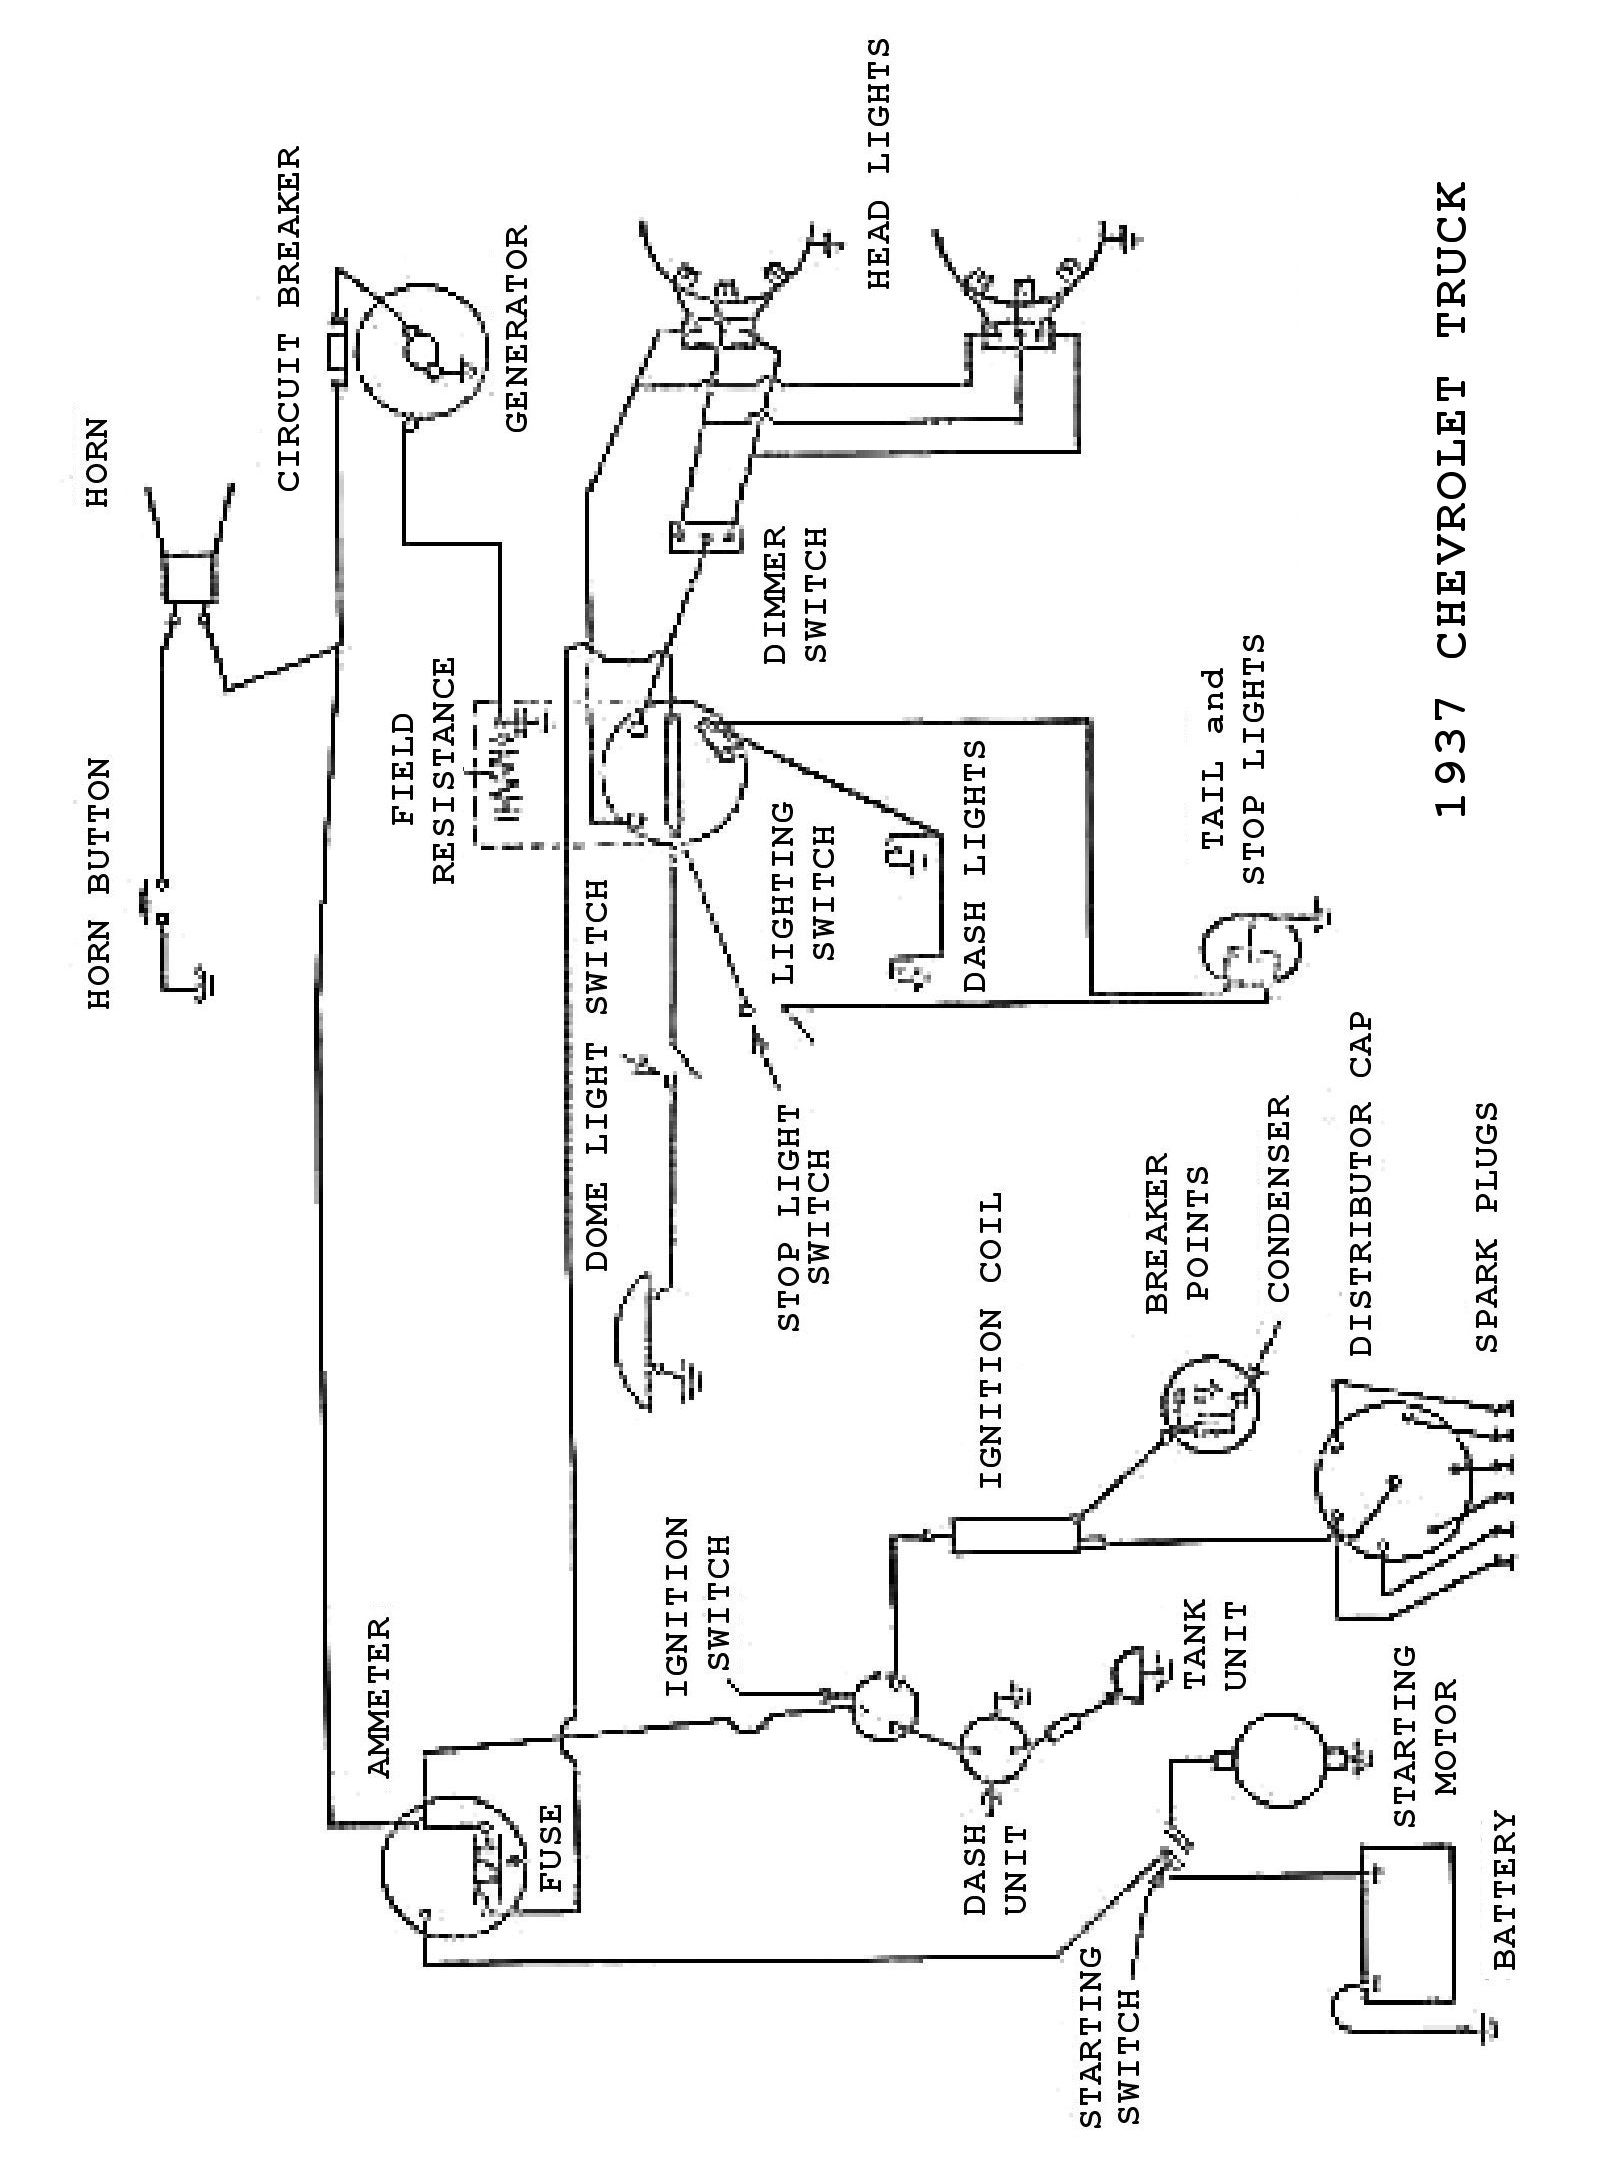 37truck wiring diagram for a 1937 chevy truck wiring diagram simonand 66 Chevy Headlight Switch Wiring Diagram at aneh.co